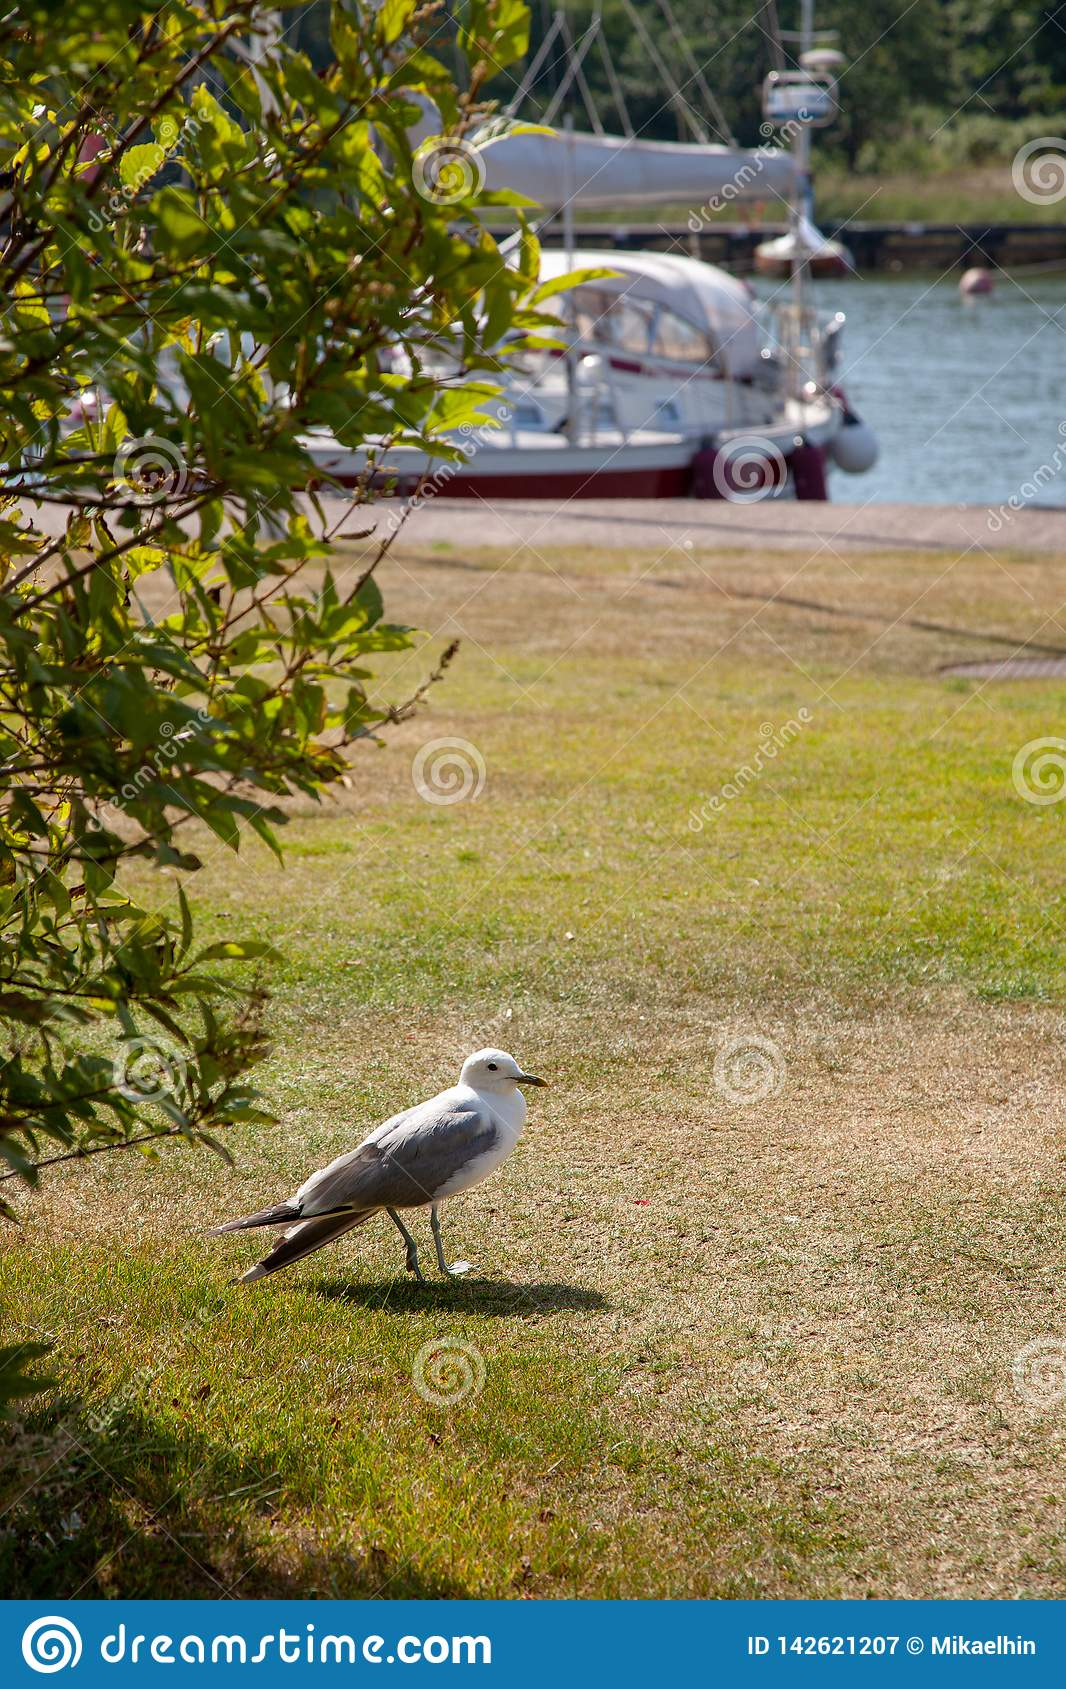 Close up of seagull standing on a lawn.